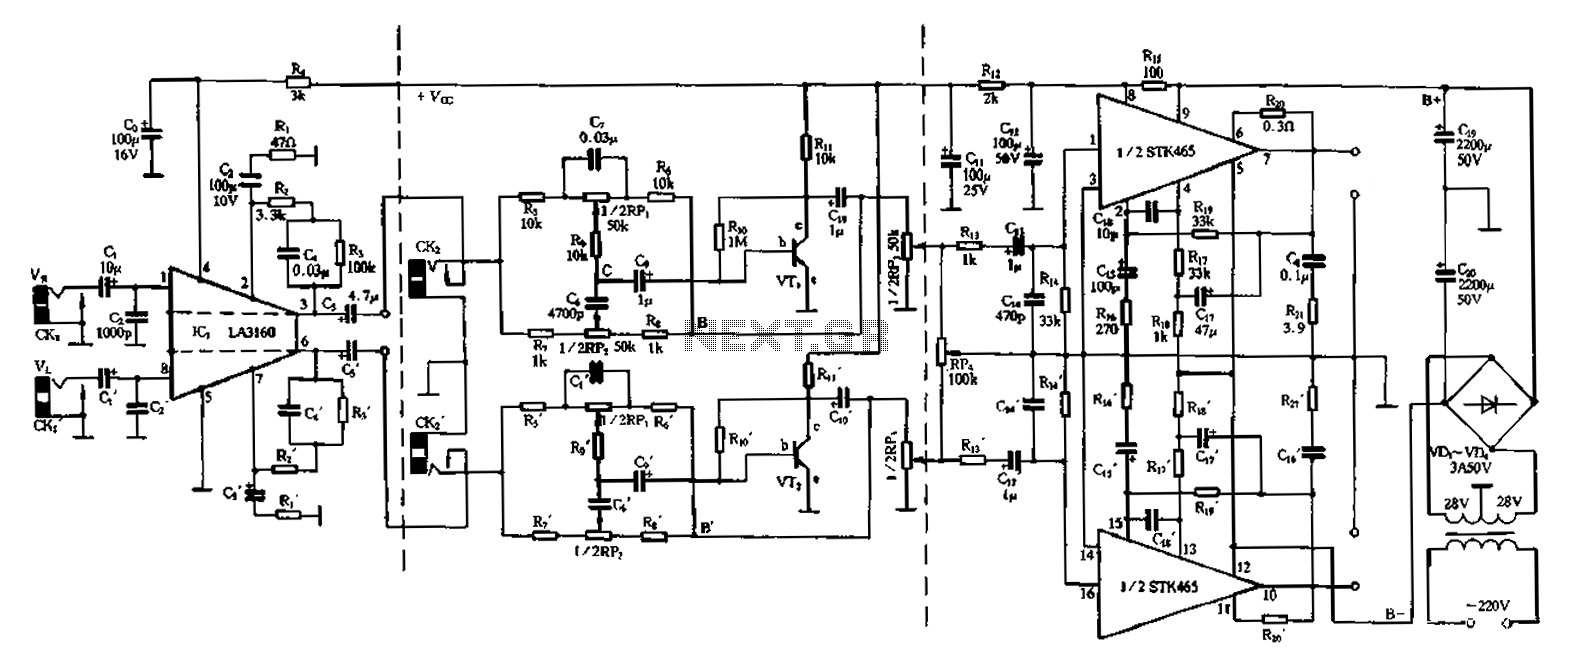 Audio Amplifier Circuit Page 3 Circuits How To Build Your Own 10watt Power Using An Ic Tda 2003 50wx2